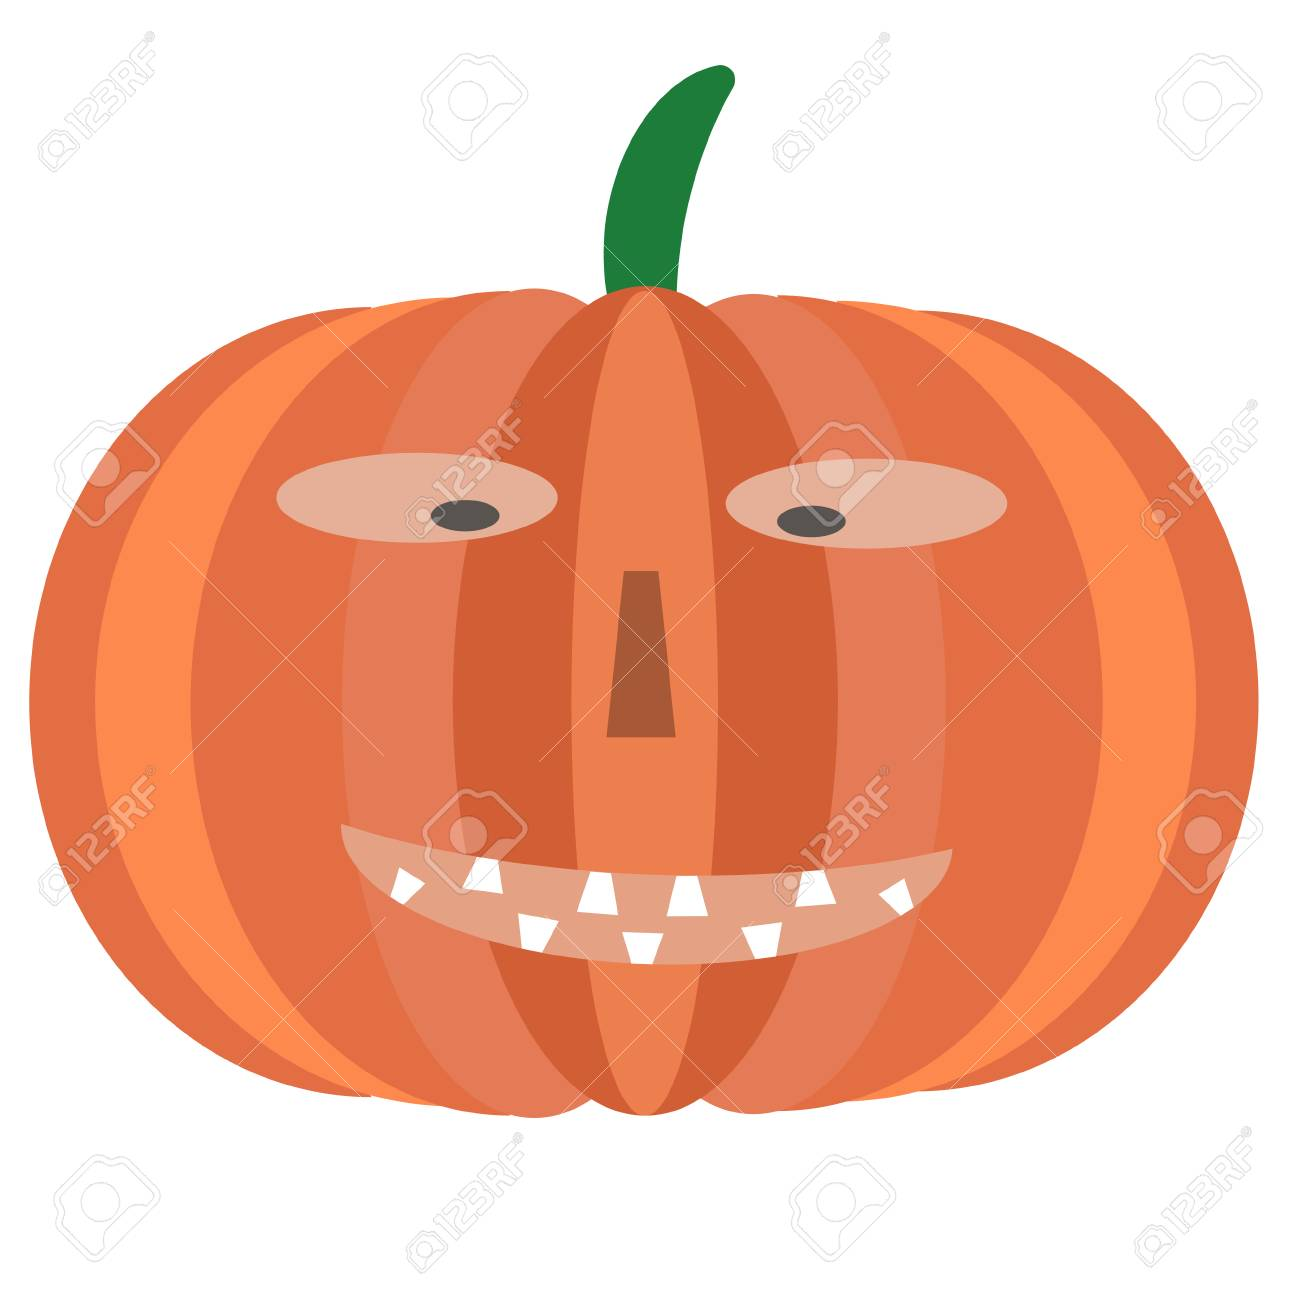 pumpkin with face illustration